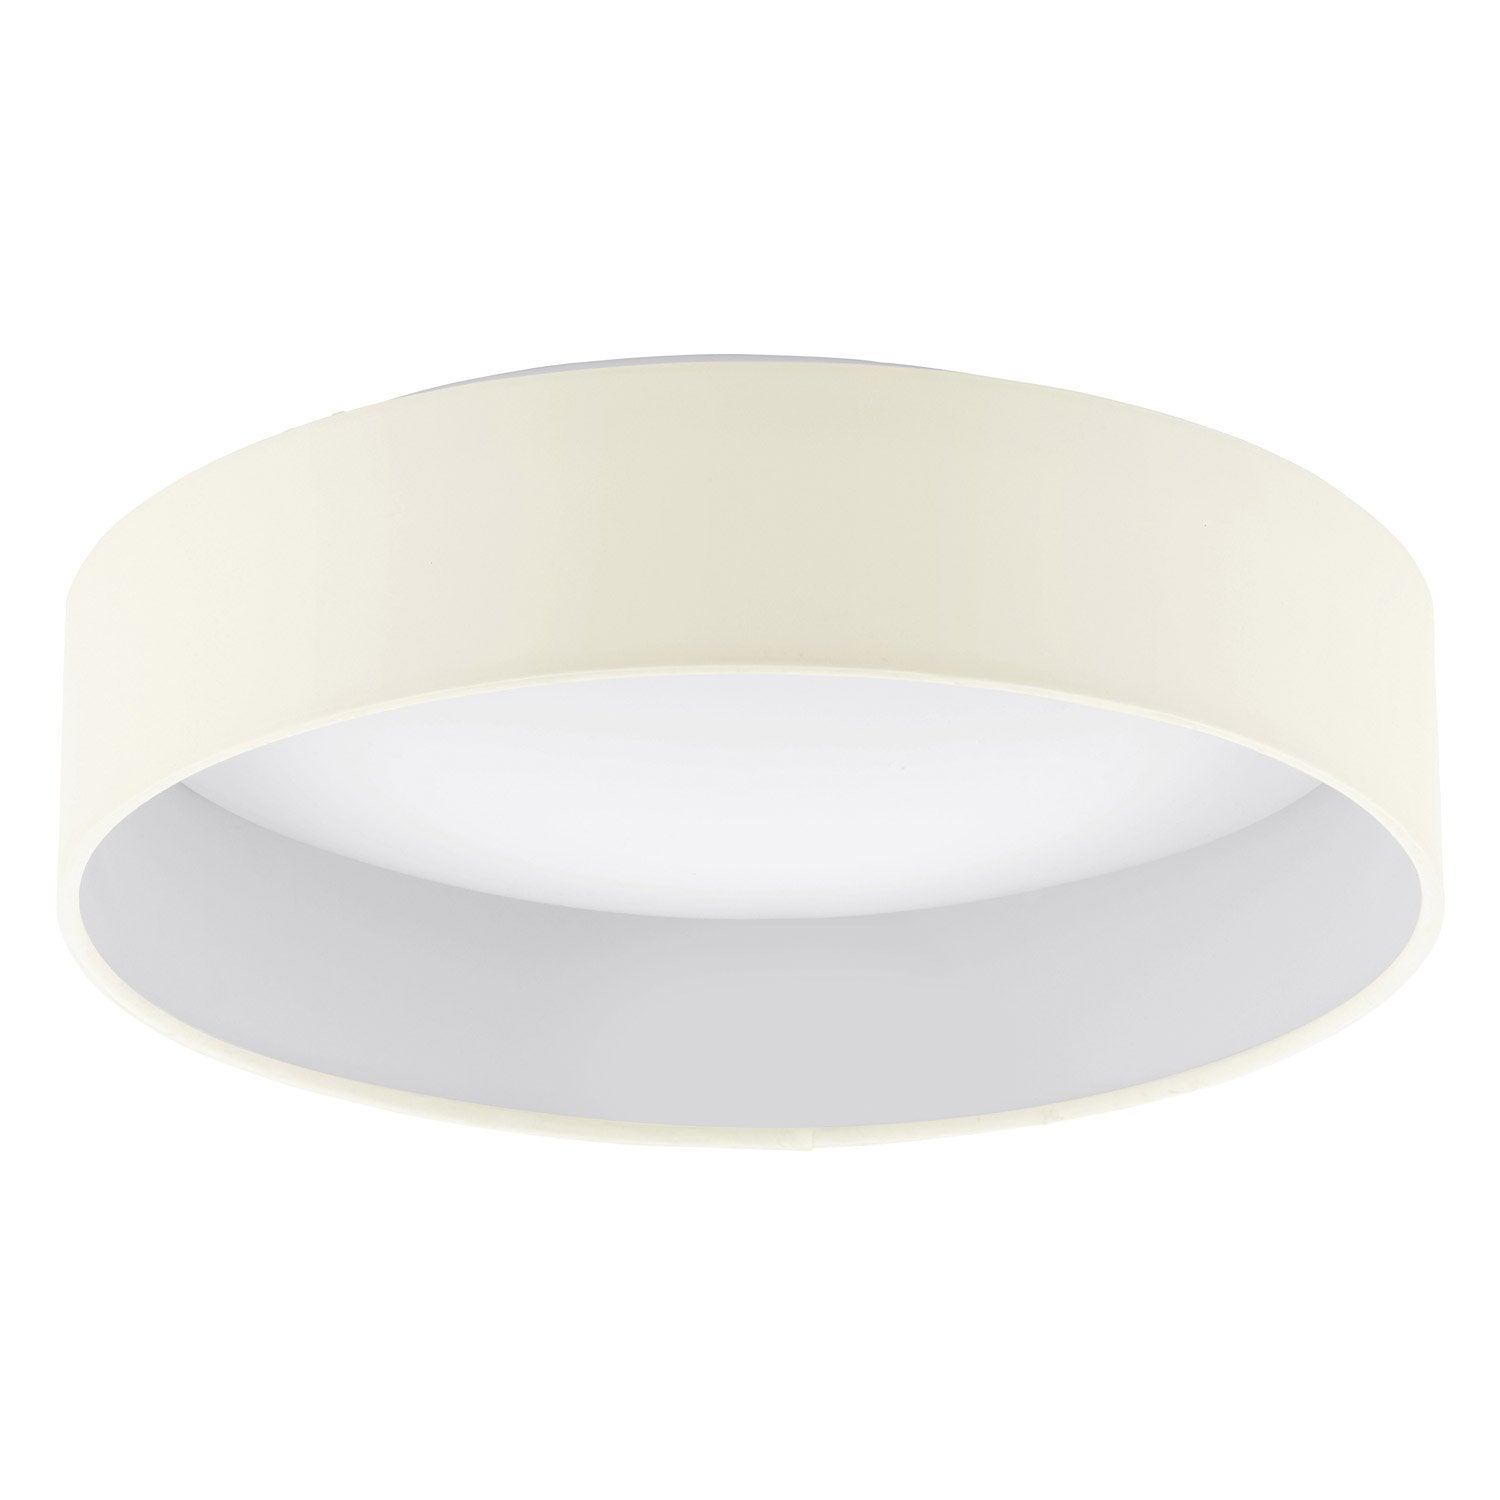 Plafonnier design led int gr e palomard plastique beige 1 - Plafonnier design led ...